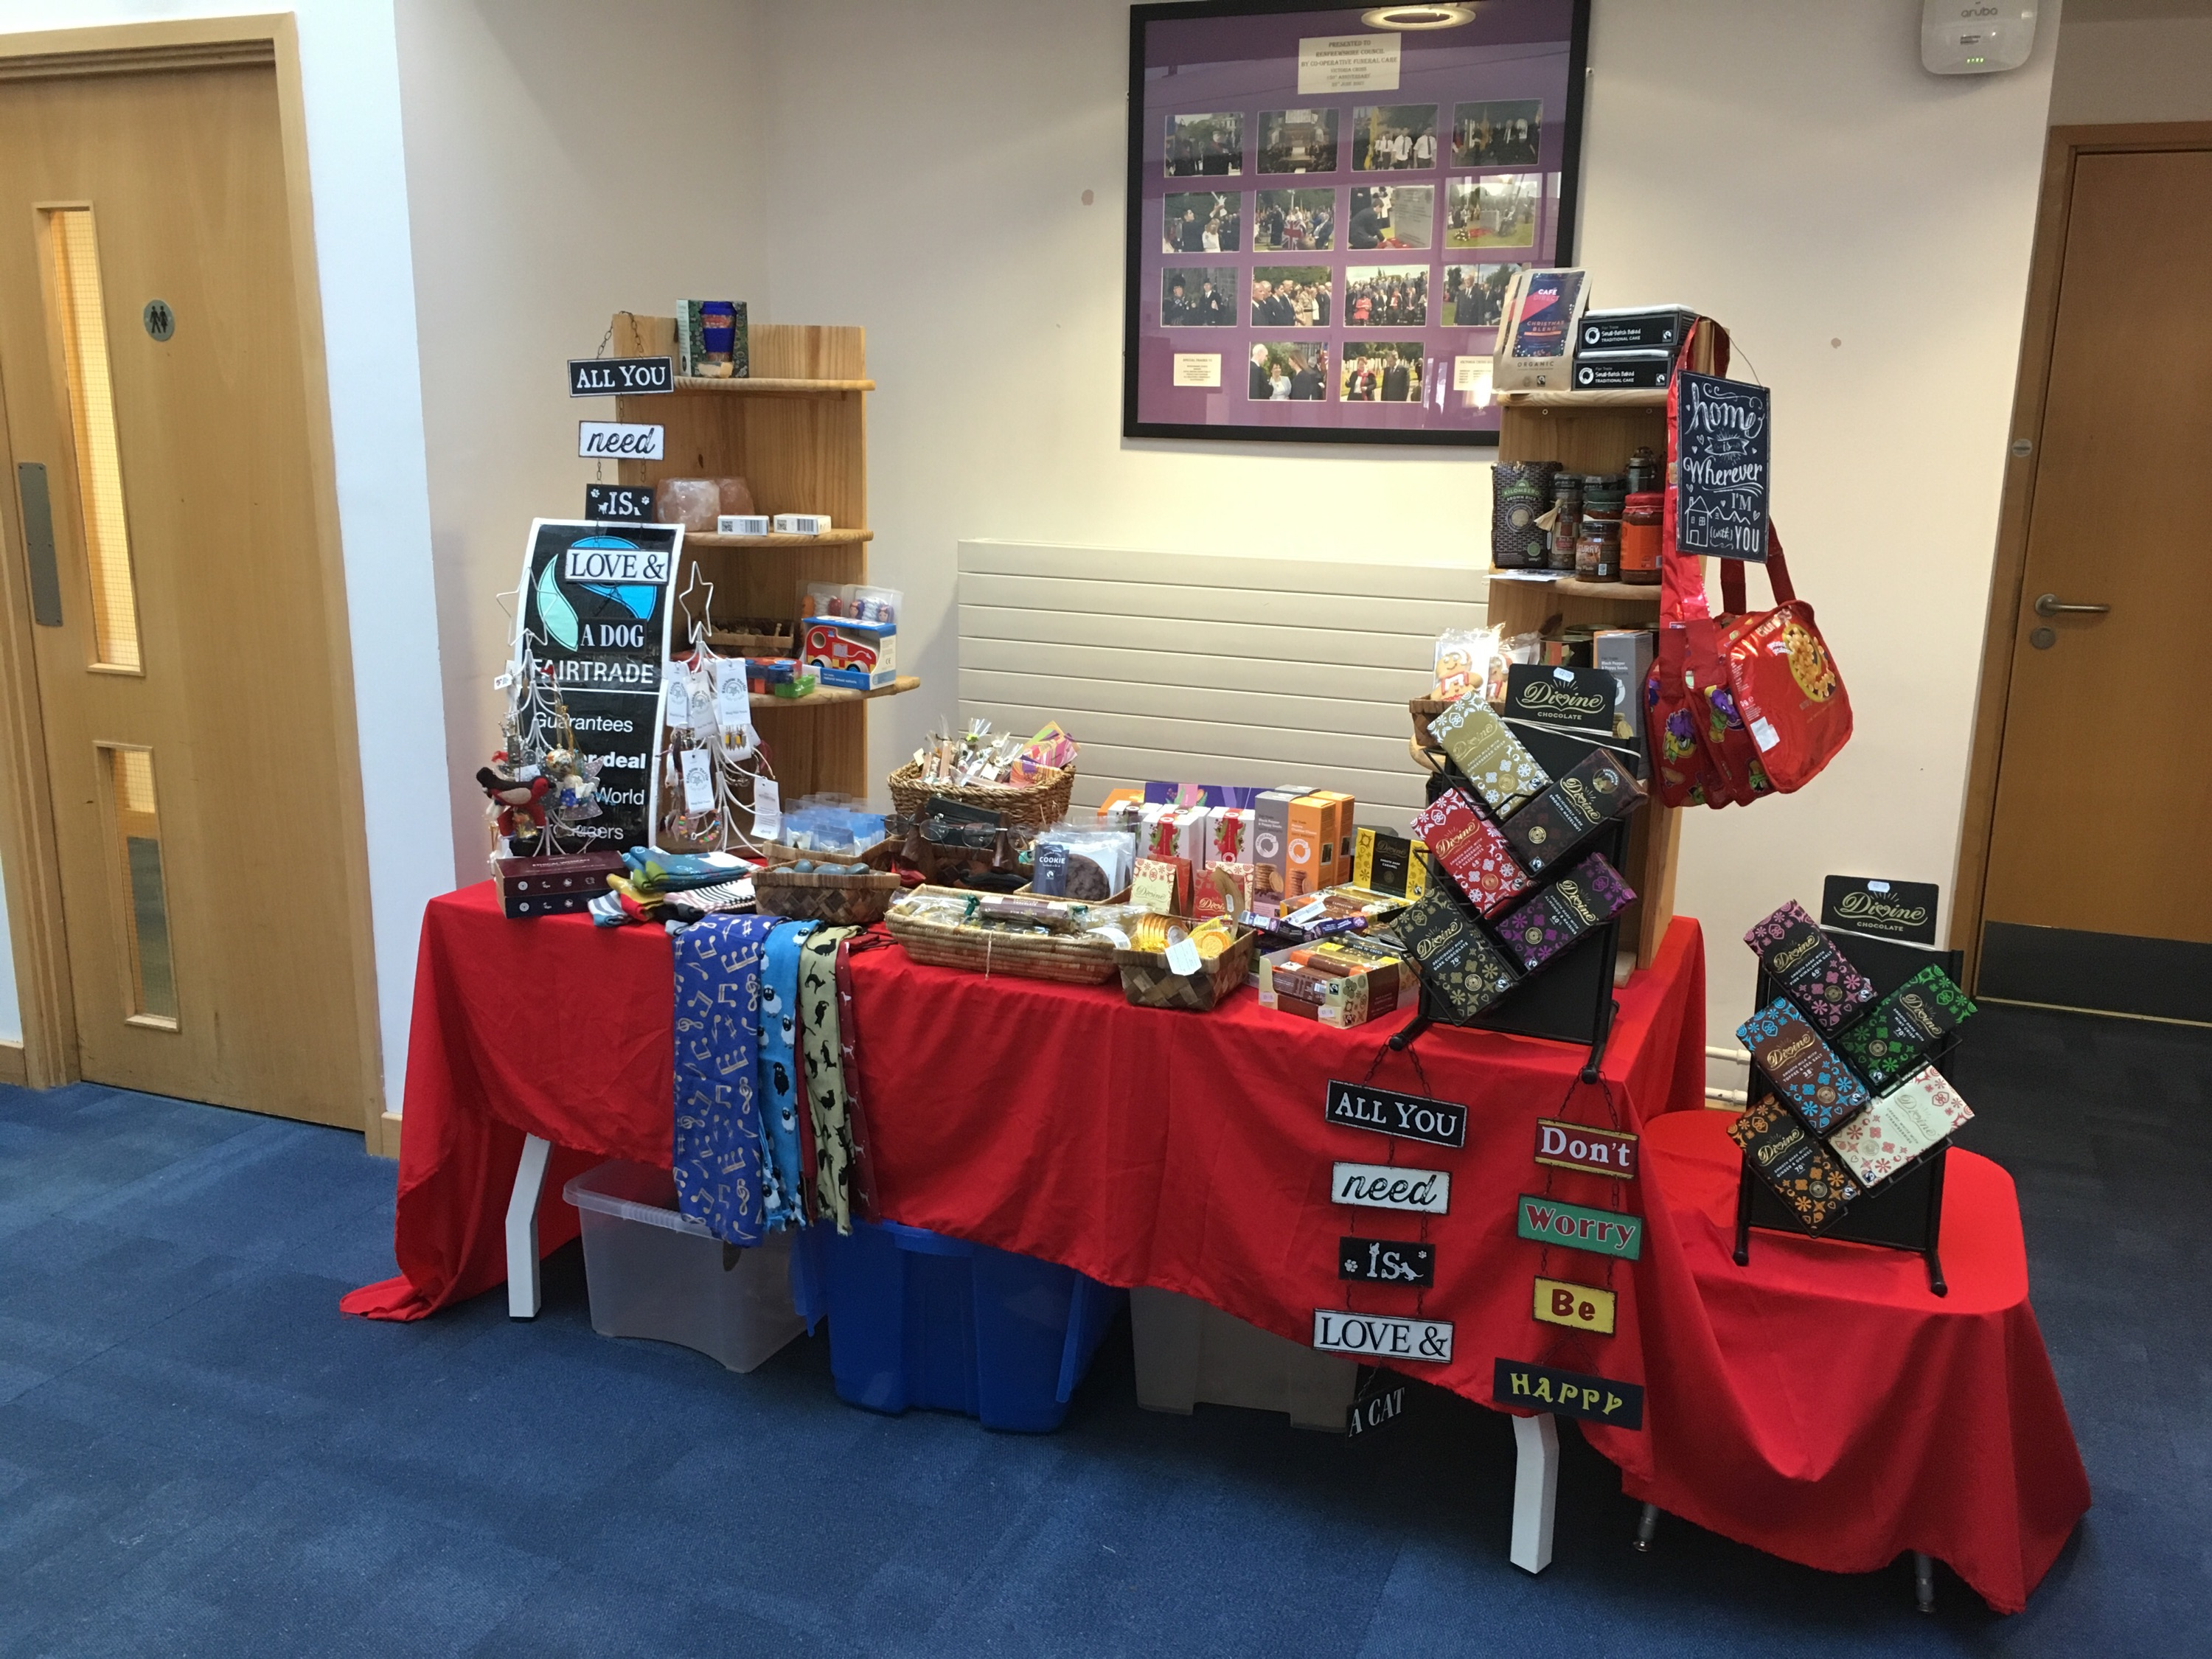 Stall displaying fair trade items including chocolate, scarves, biscuits and wall hangings